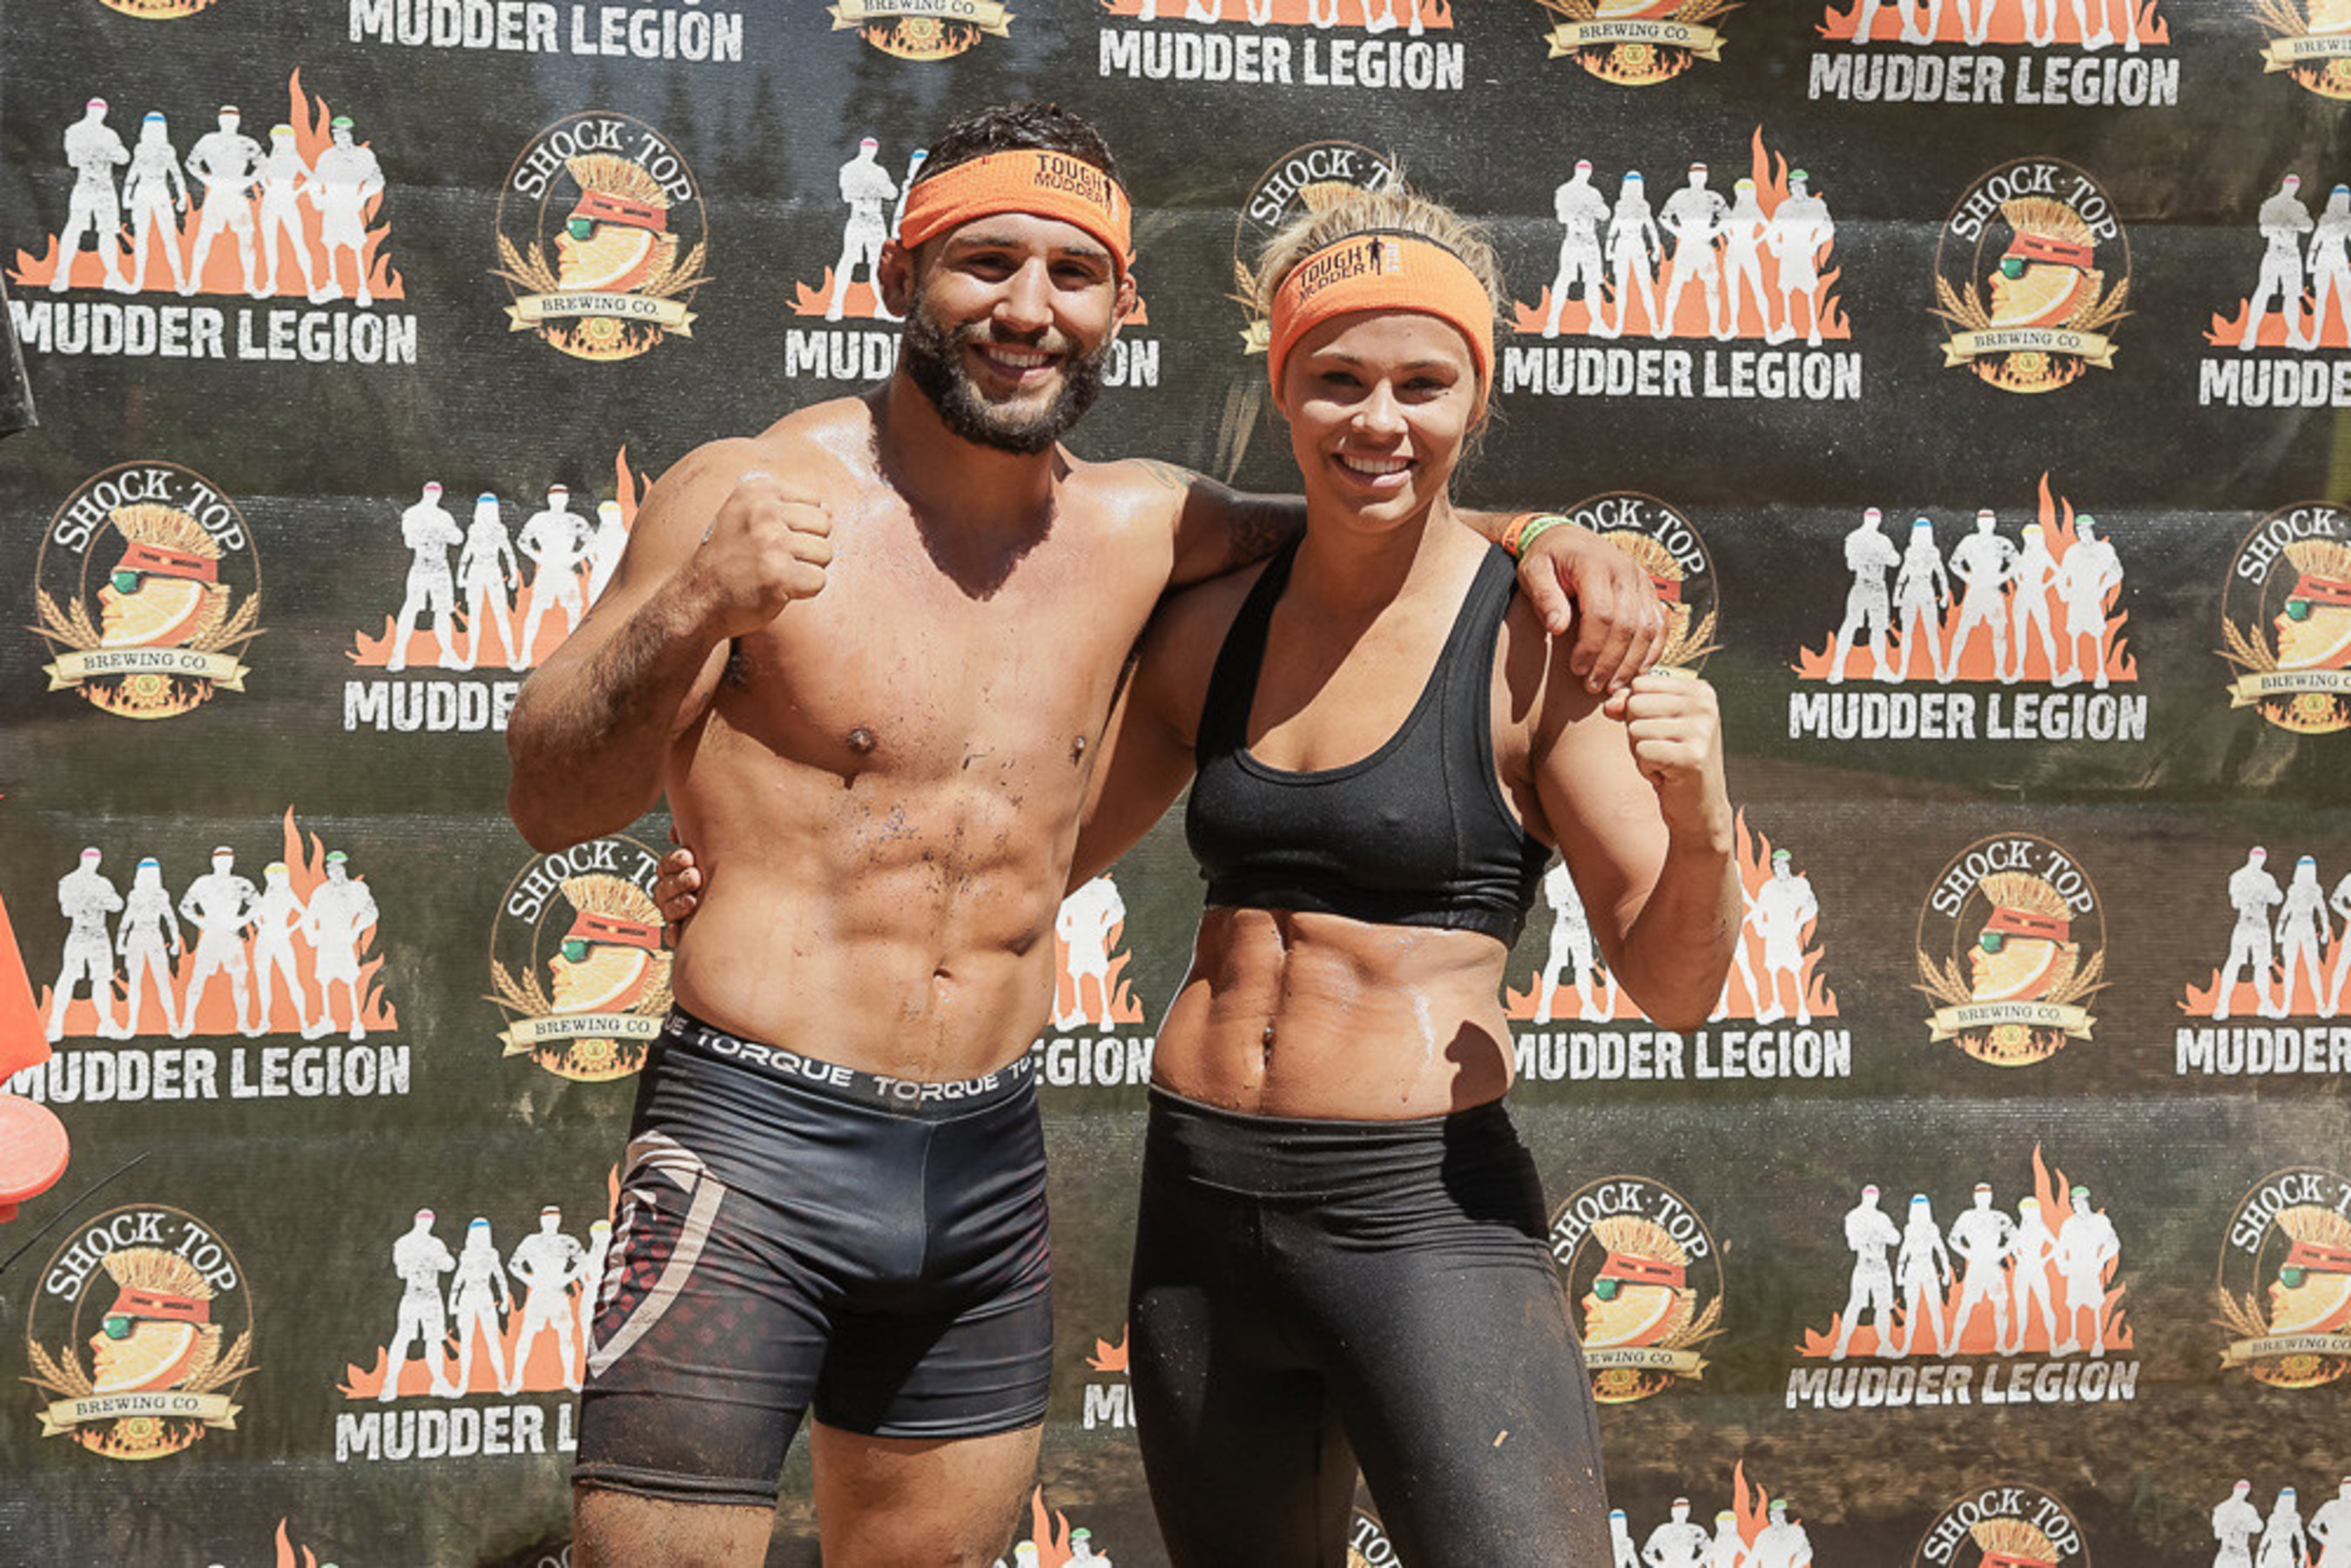 UFC® Fighters Chad 'Money' Mendes and Paige '12 Gauge' VanZant Tackle Tough Mudder™ Tahoe in Video